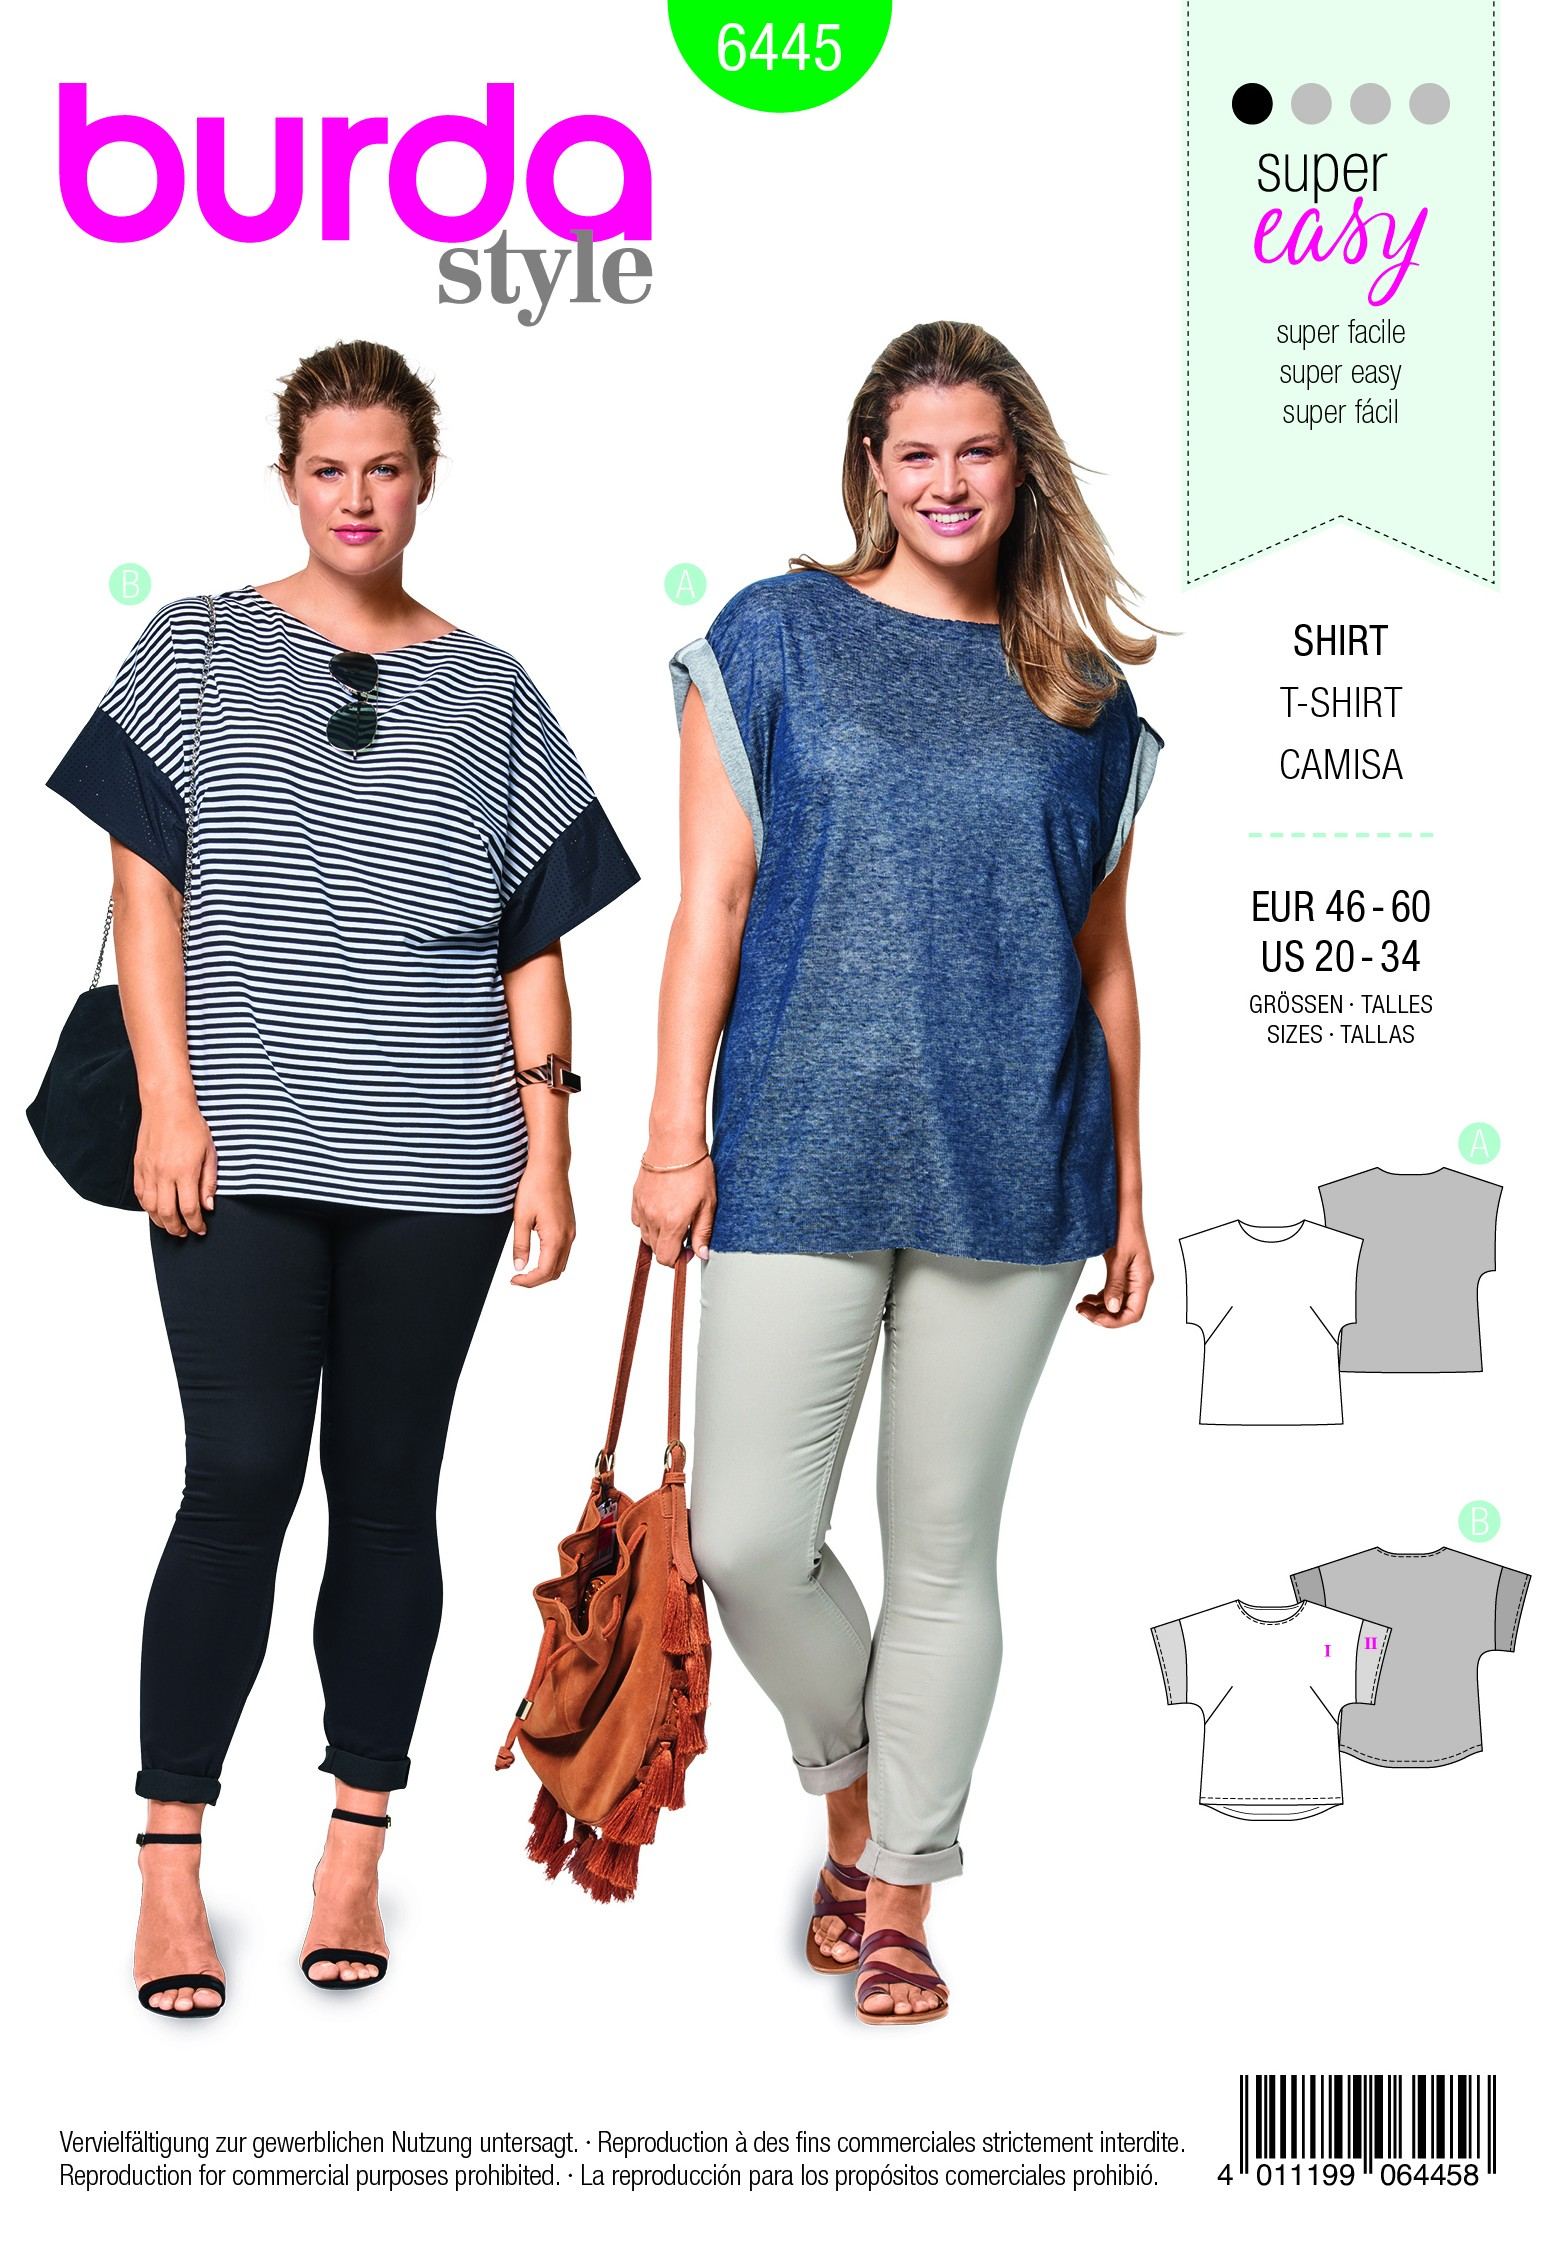 Burda Style Womans' Simple Casual Fitting Tops Sewing Pattern 6786